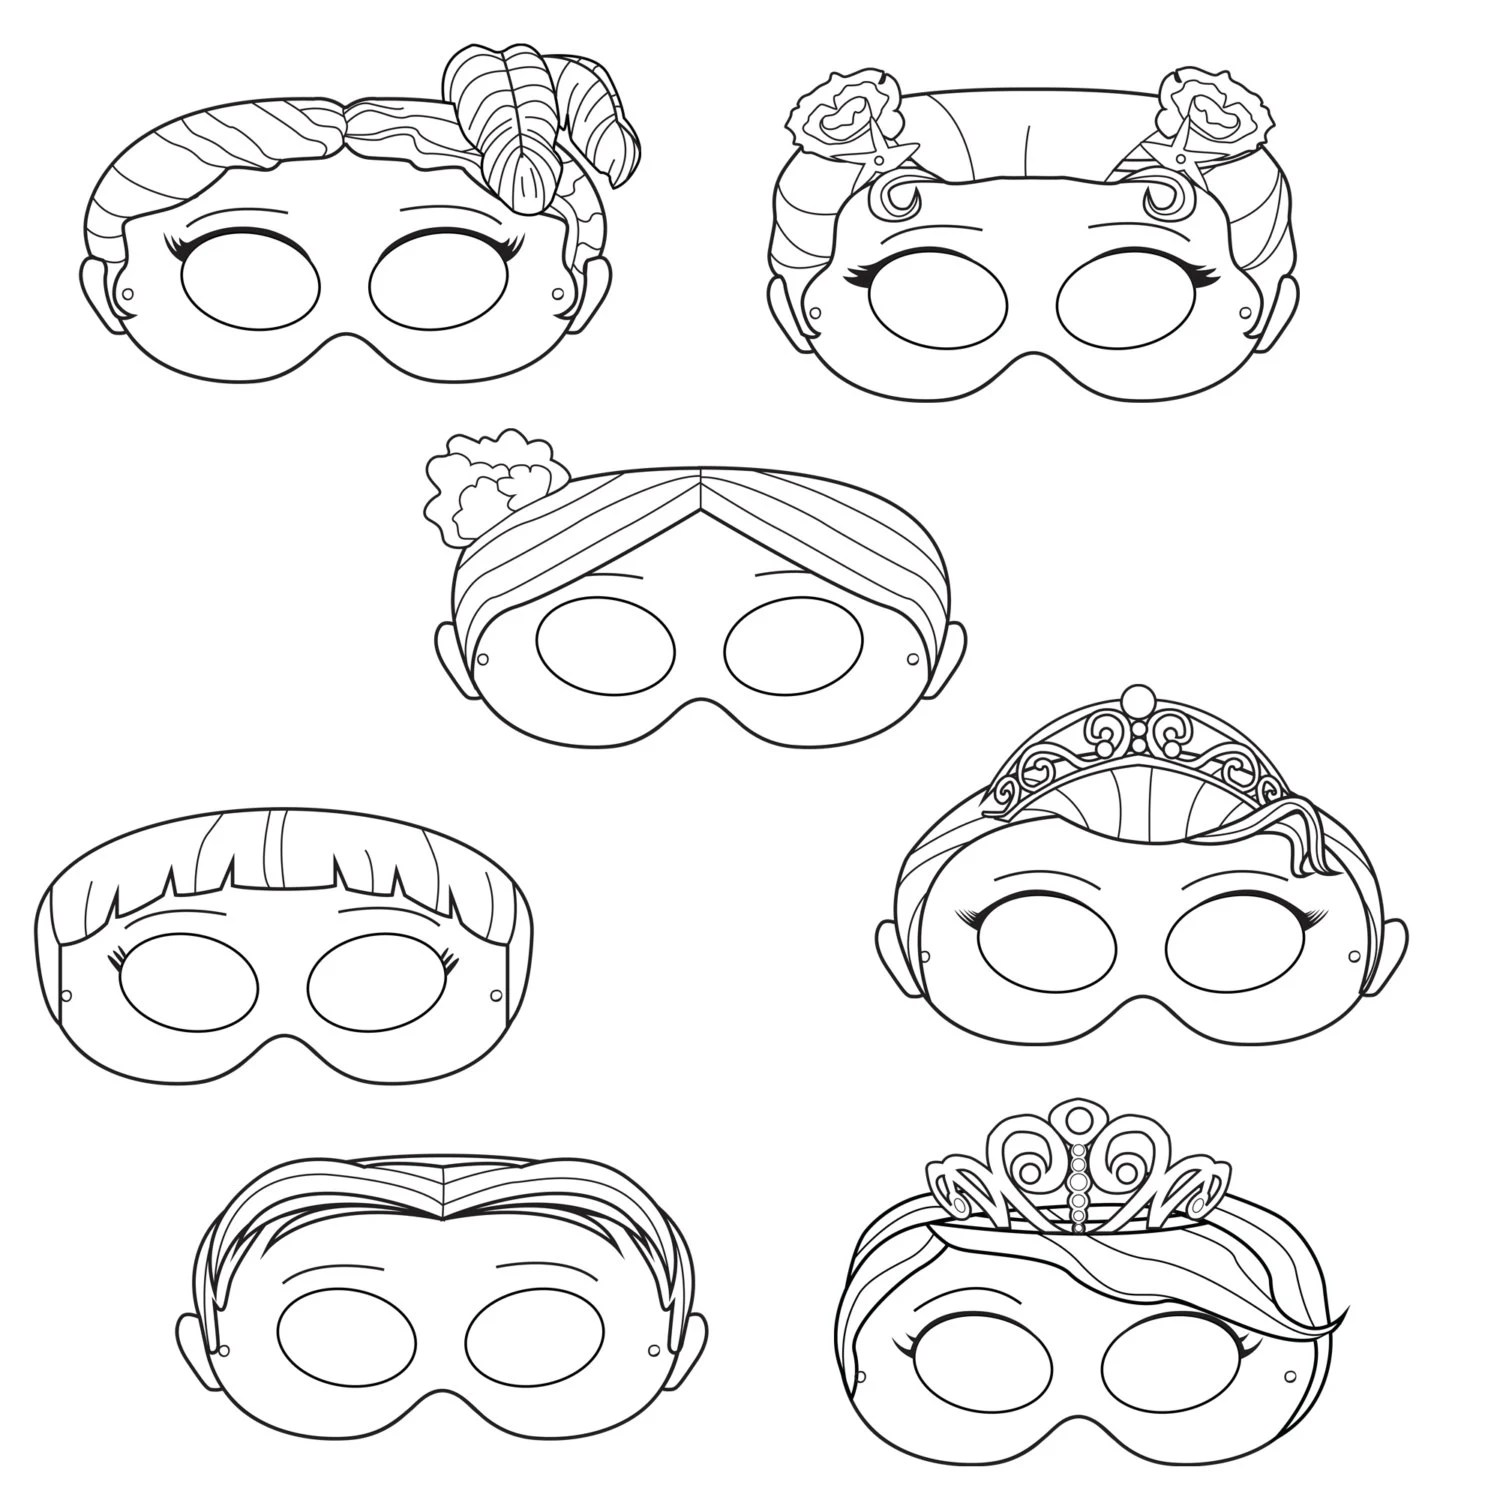 Princesses Printable Coloring Masks princess masks prince